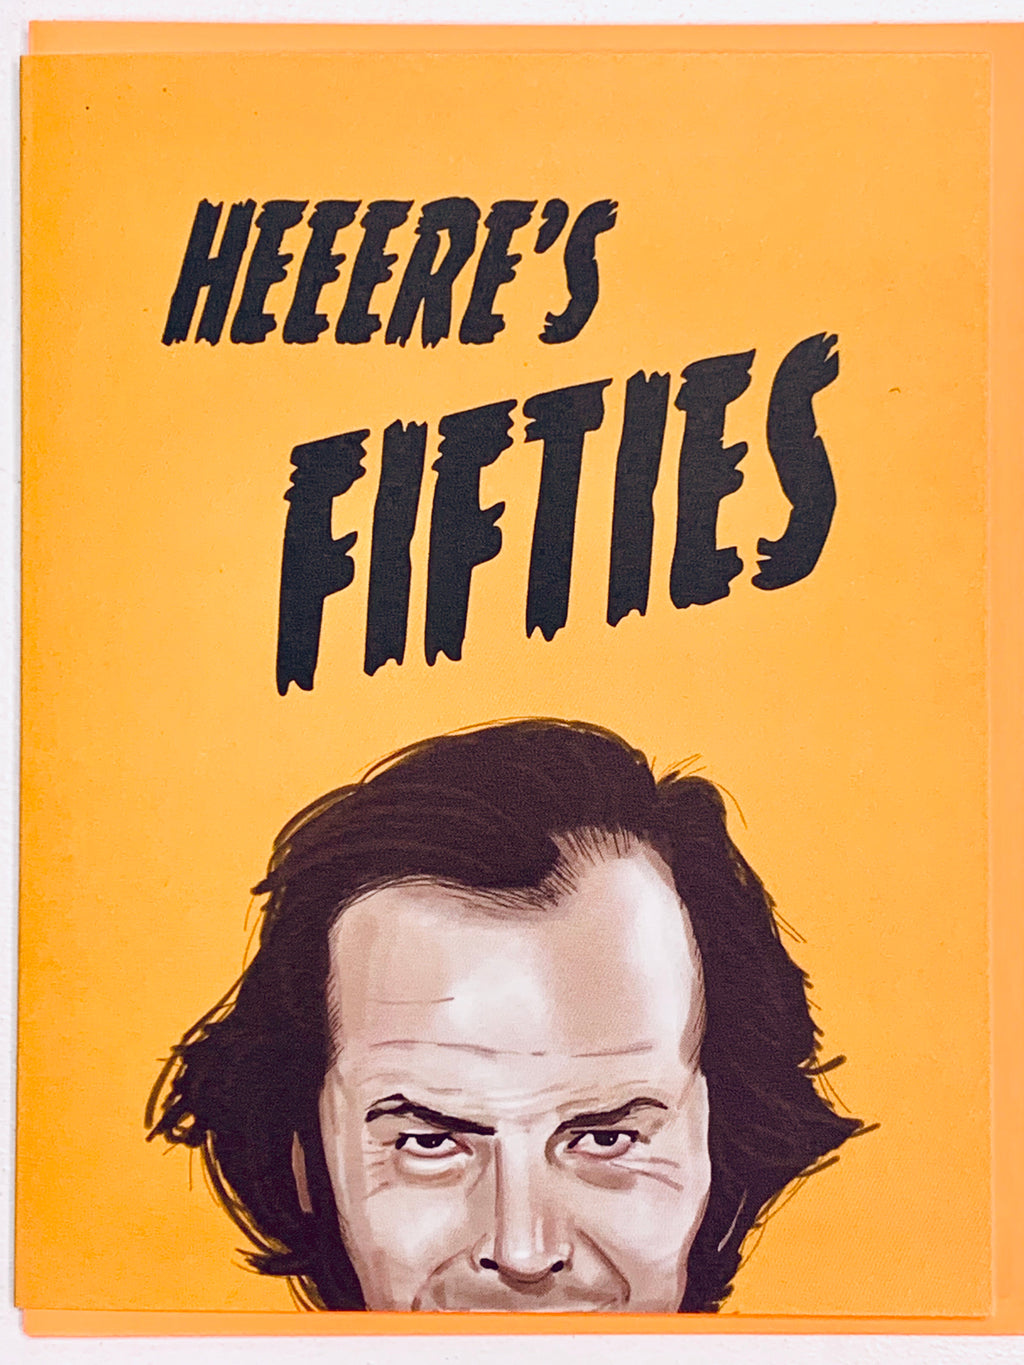 Heeere's Fifties Card